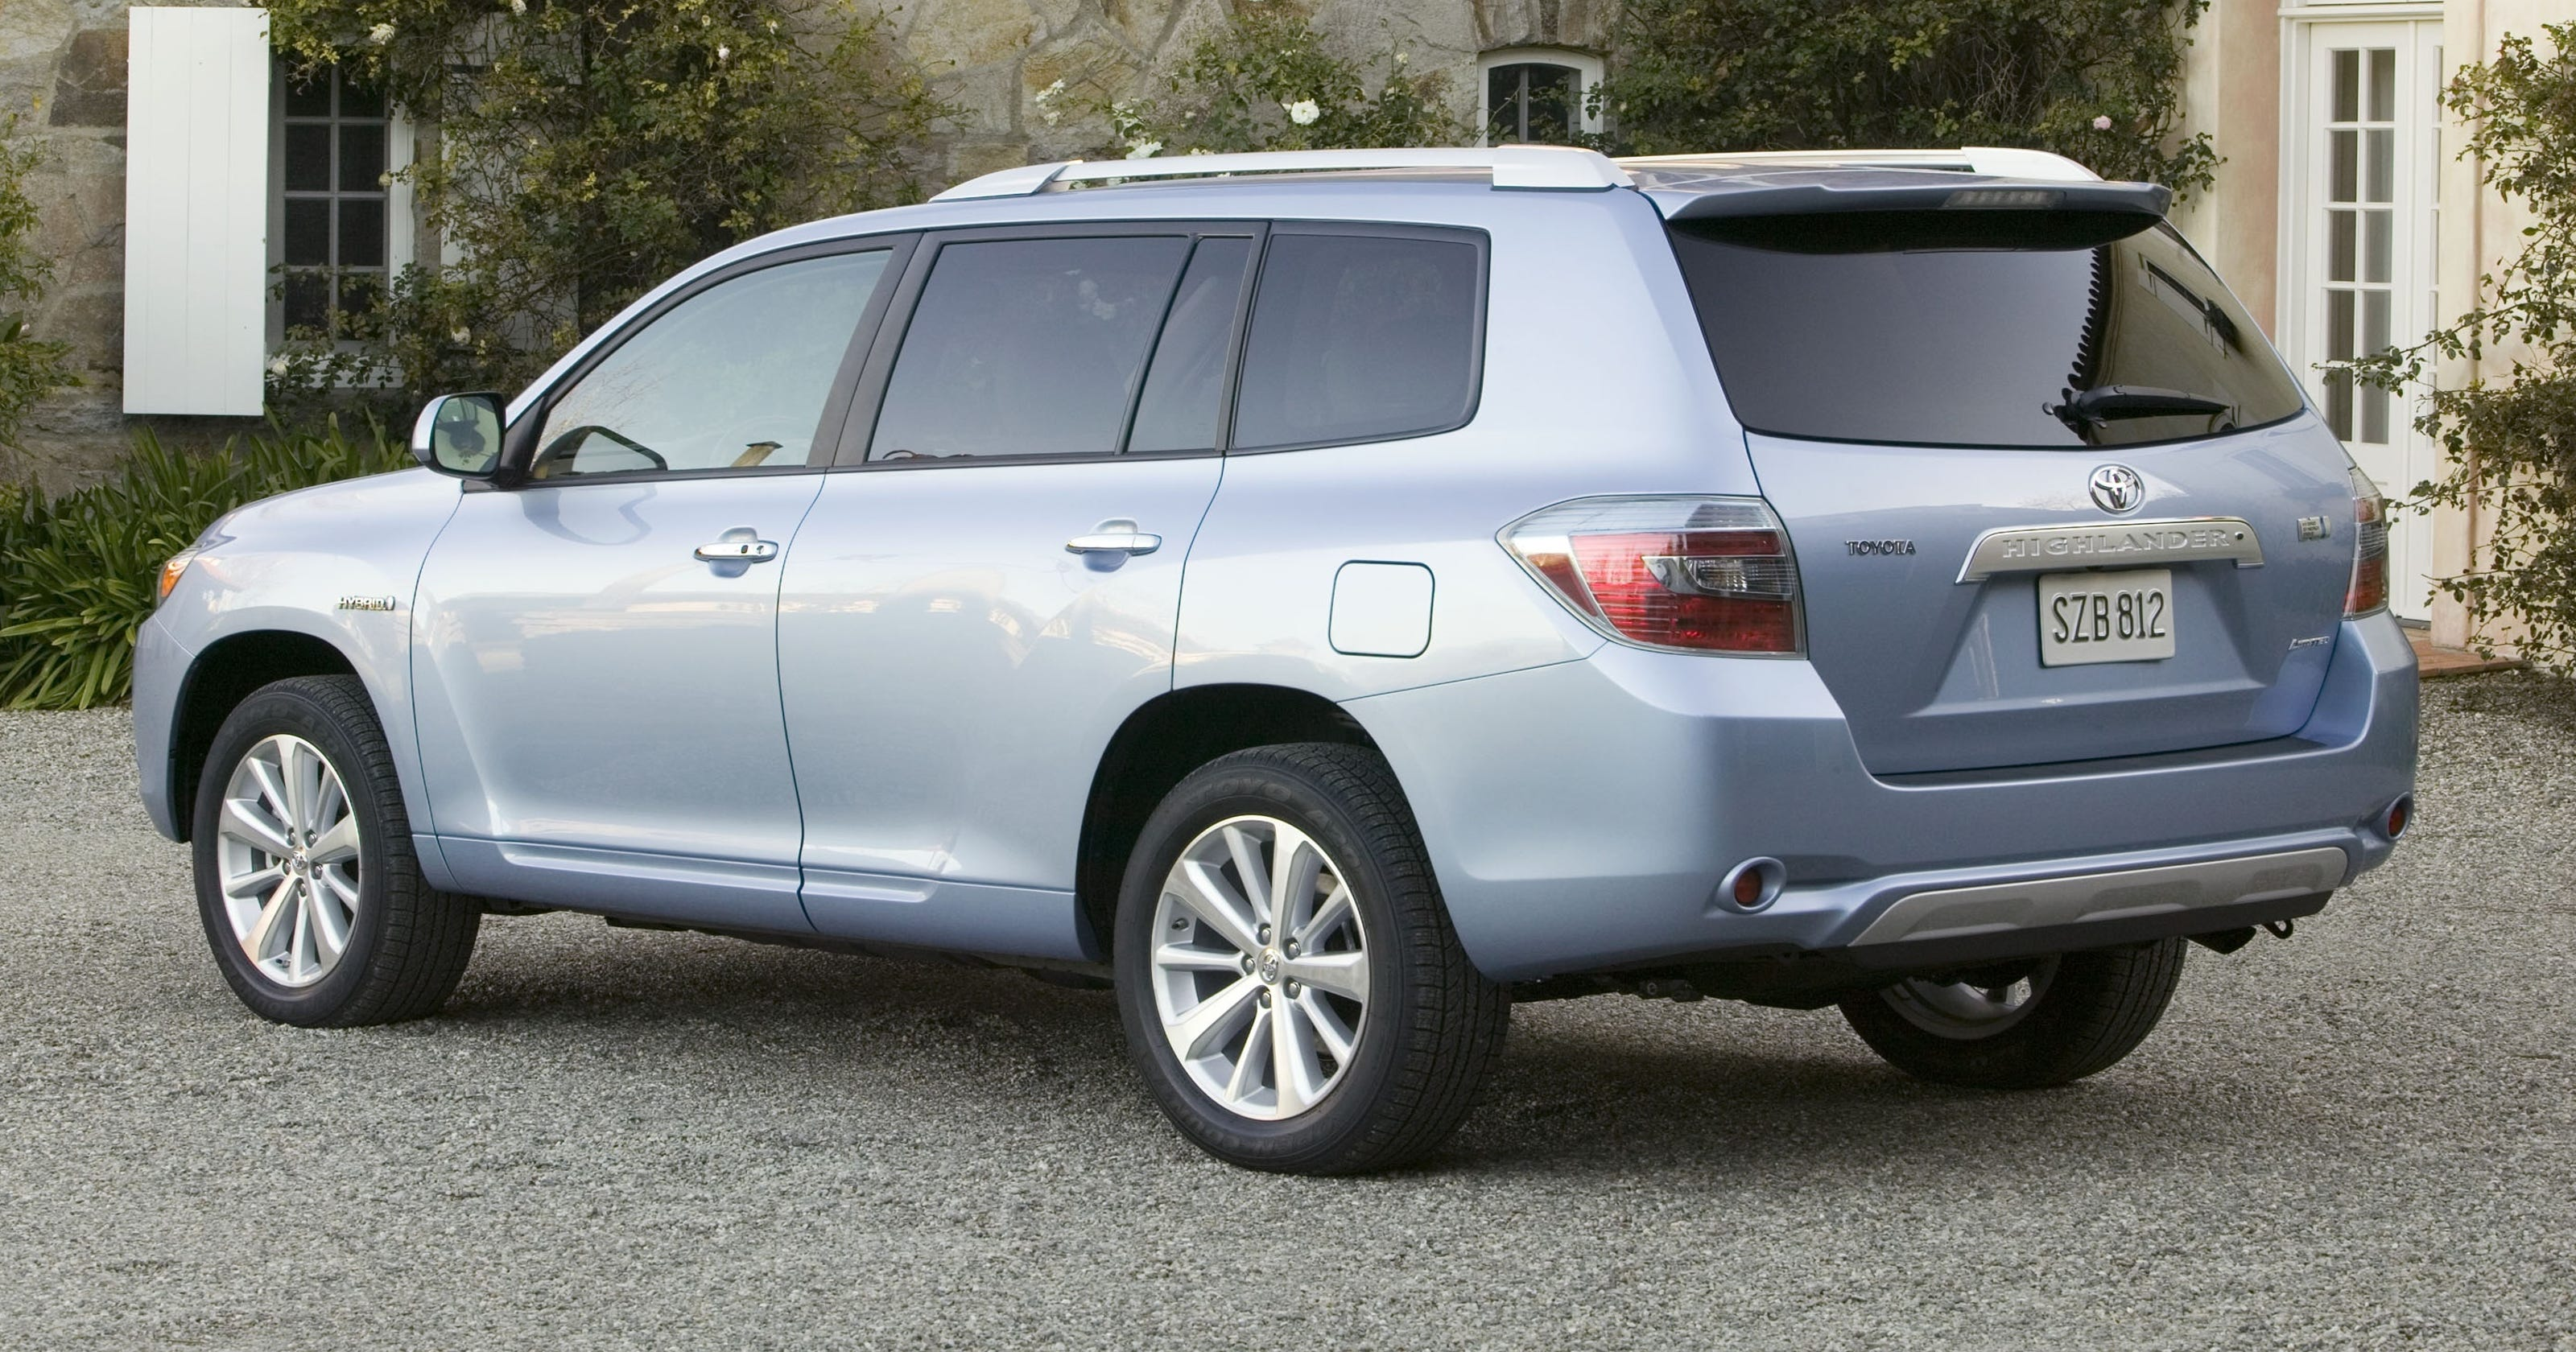 Toyota recalls hybrids for heat, Lexus cars for engines